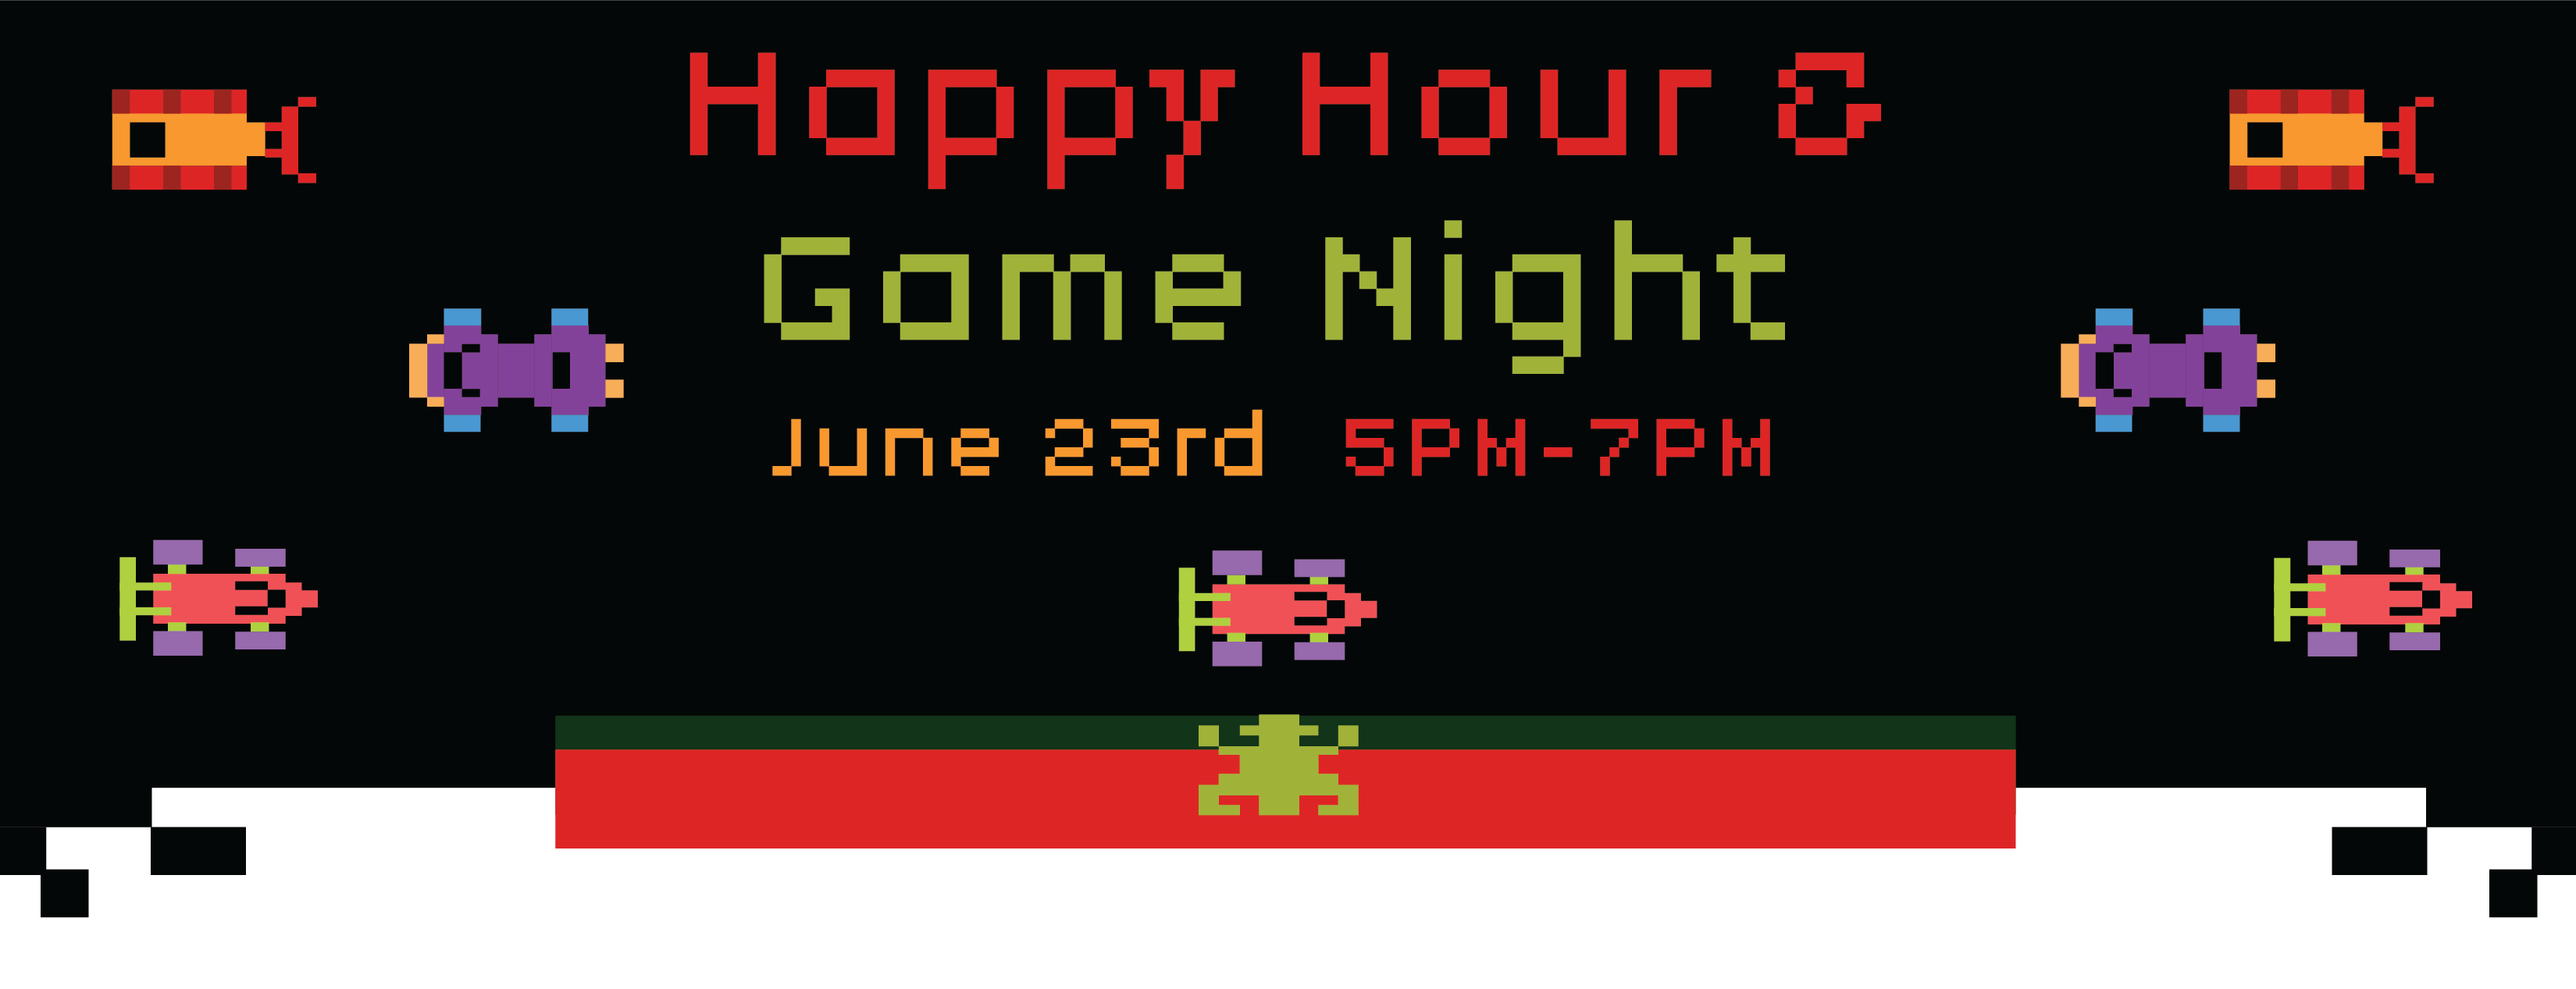 June 23rd Happy Hour & Game Night!